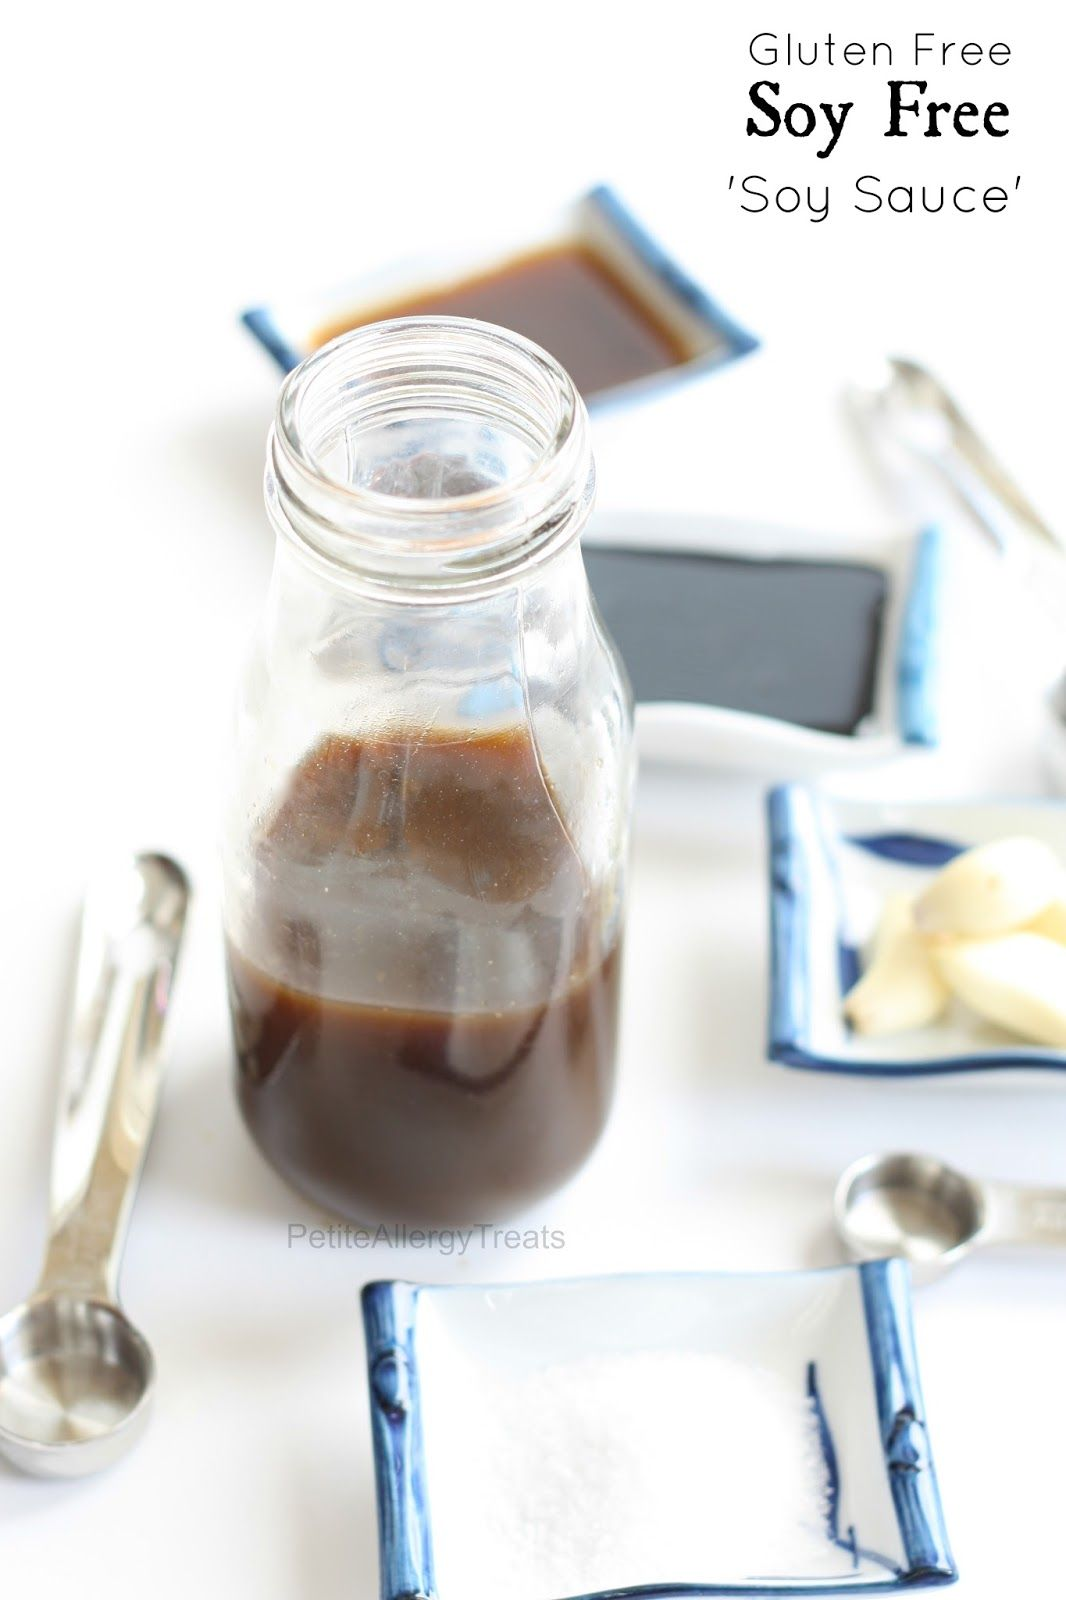 This Soy Free soy sauce will add extra flavor to any stir fry and has that missing Asian flavor...